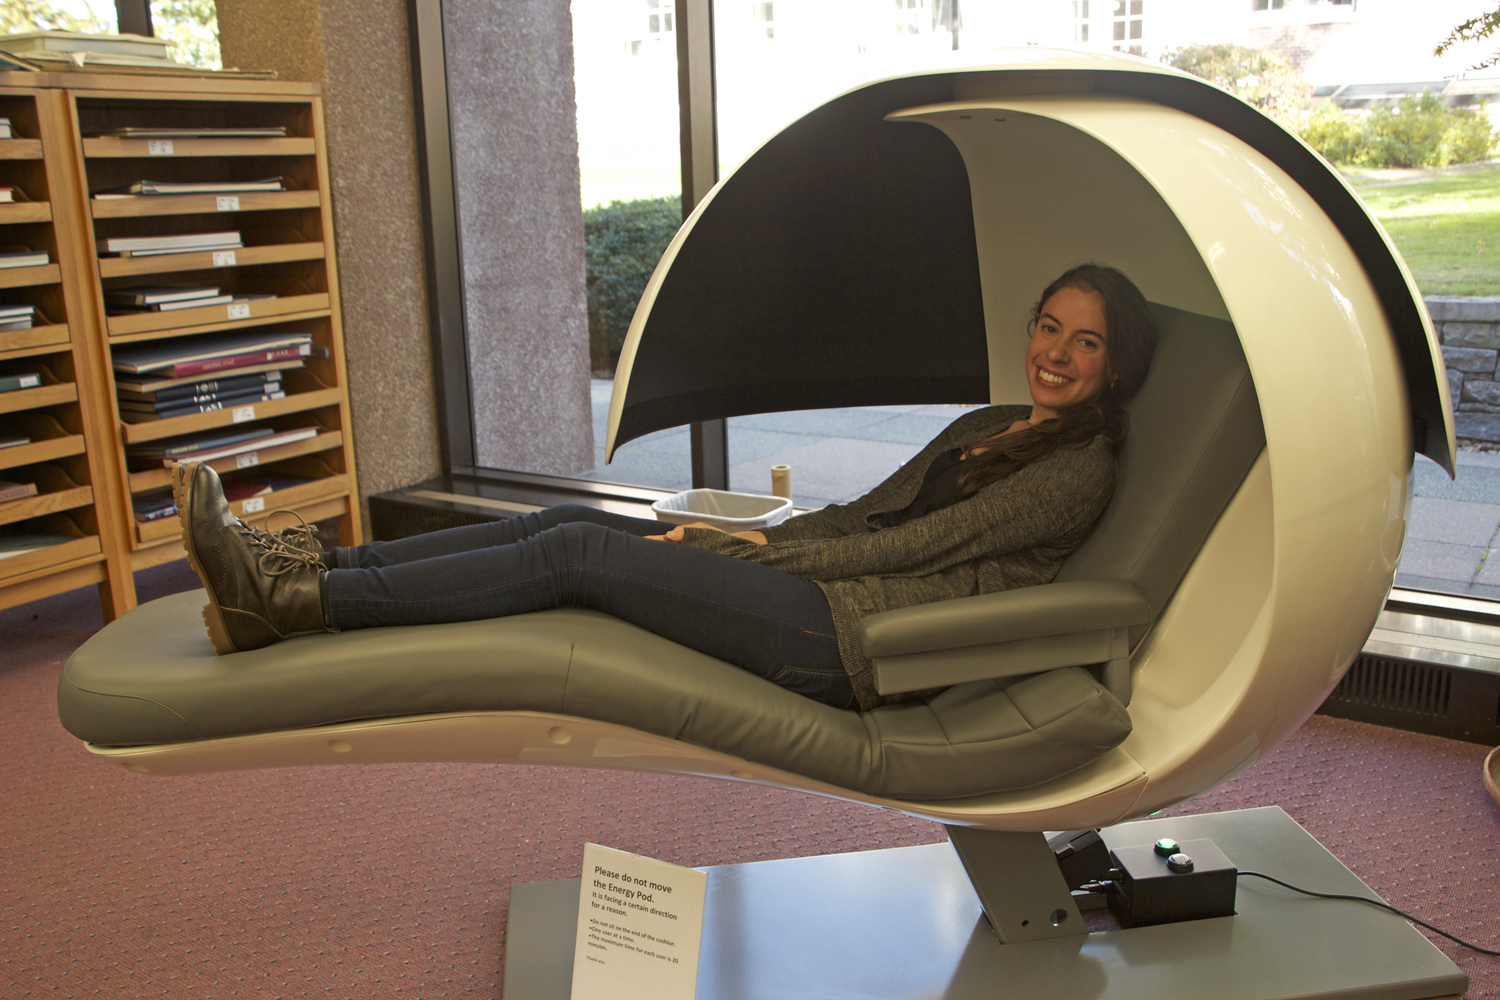 Energy Pod alumni donate, install 2 energypods in wesleyan libraries | news